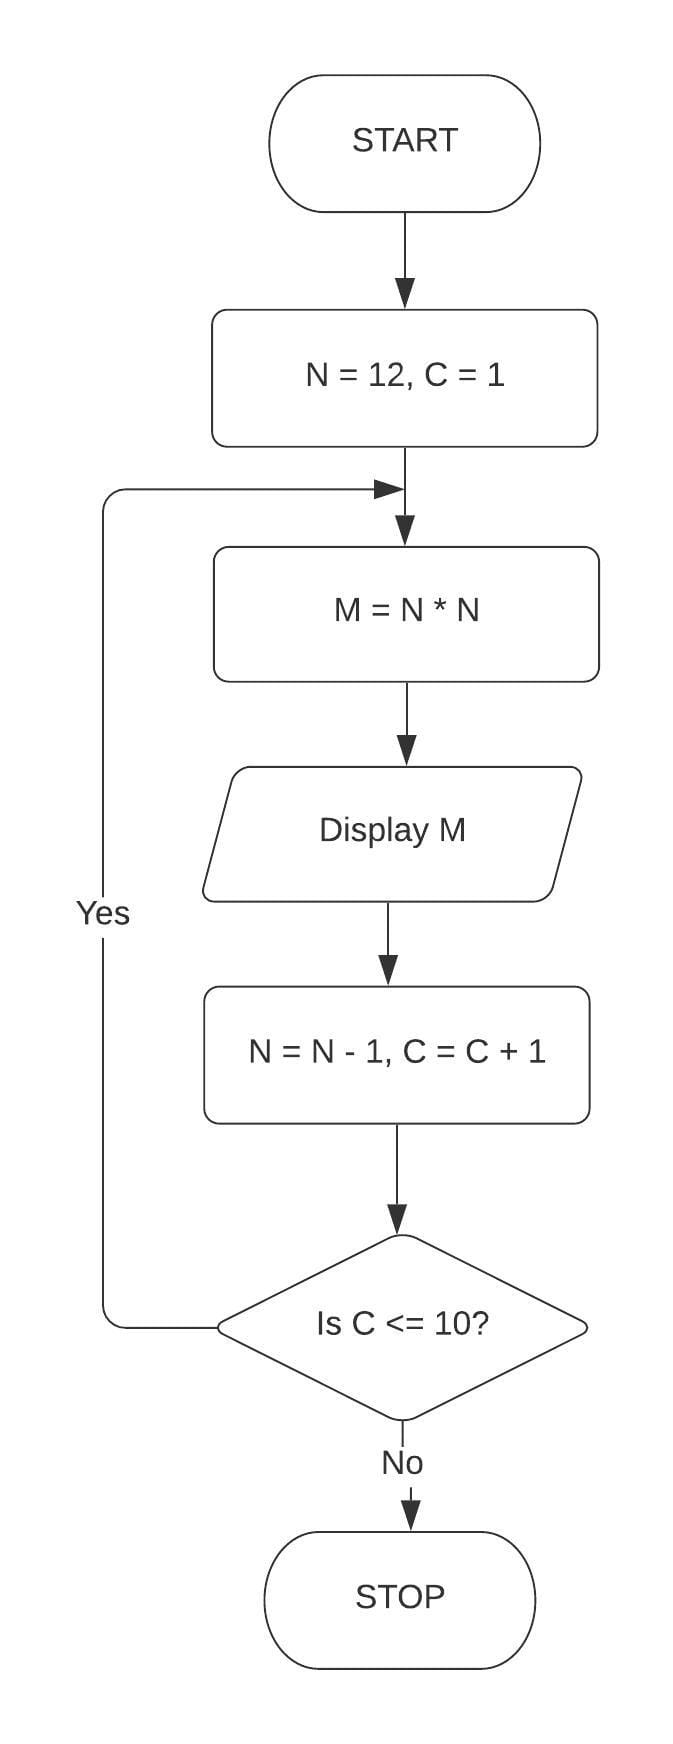 Draw a flowchart and write a program in QBASIC to display the first 10 terms of the series: 144, 121, 100. Class 7 ICSE Understanding Computer Studies